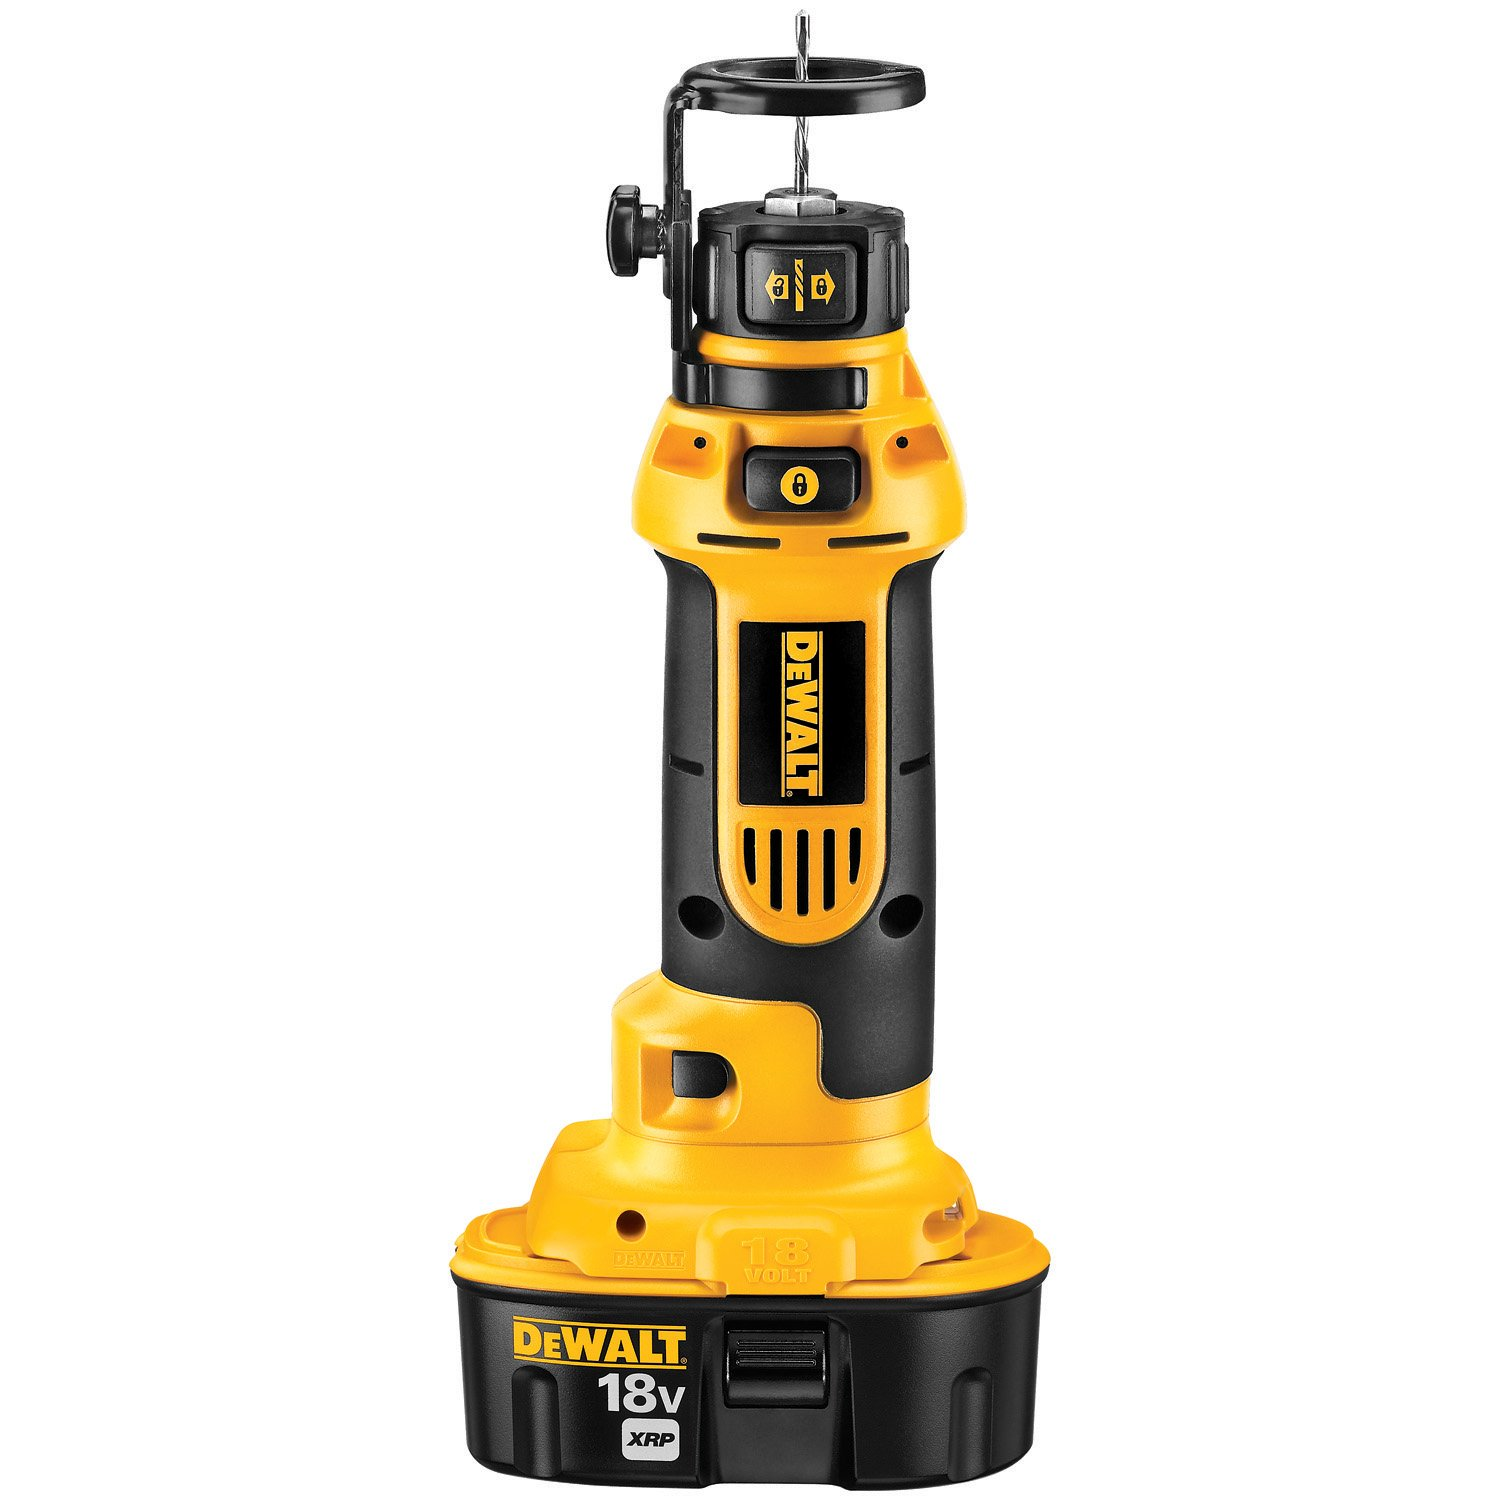 dewalt 18v tools. dewalt dc550ka 18-volt nicd cordless spiral-saw with 1/8-inch and 1/4-inch collets - power rotary tools amazon.com dewalt 18v a